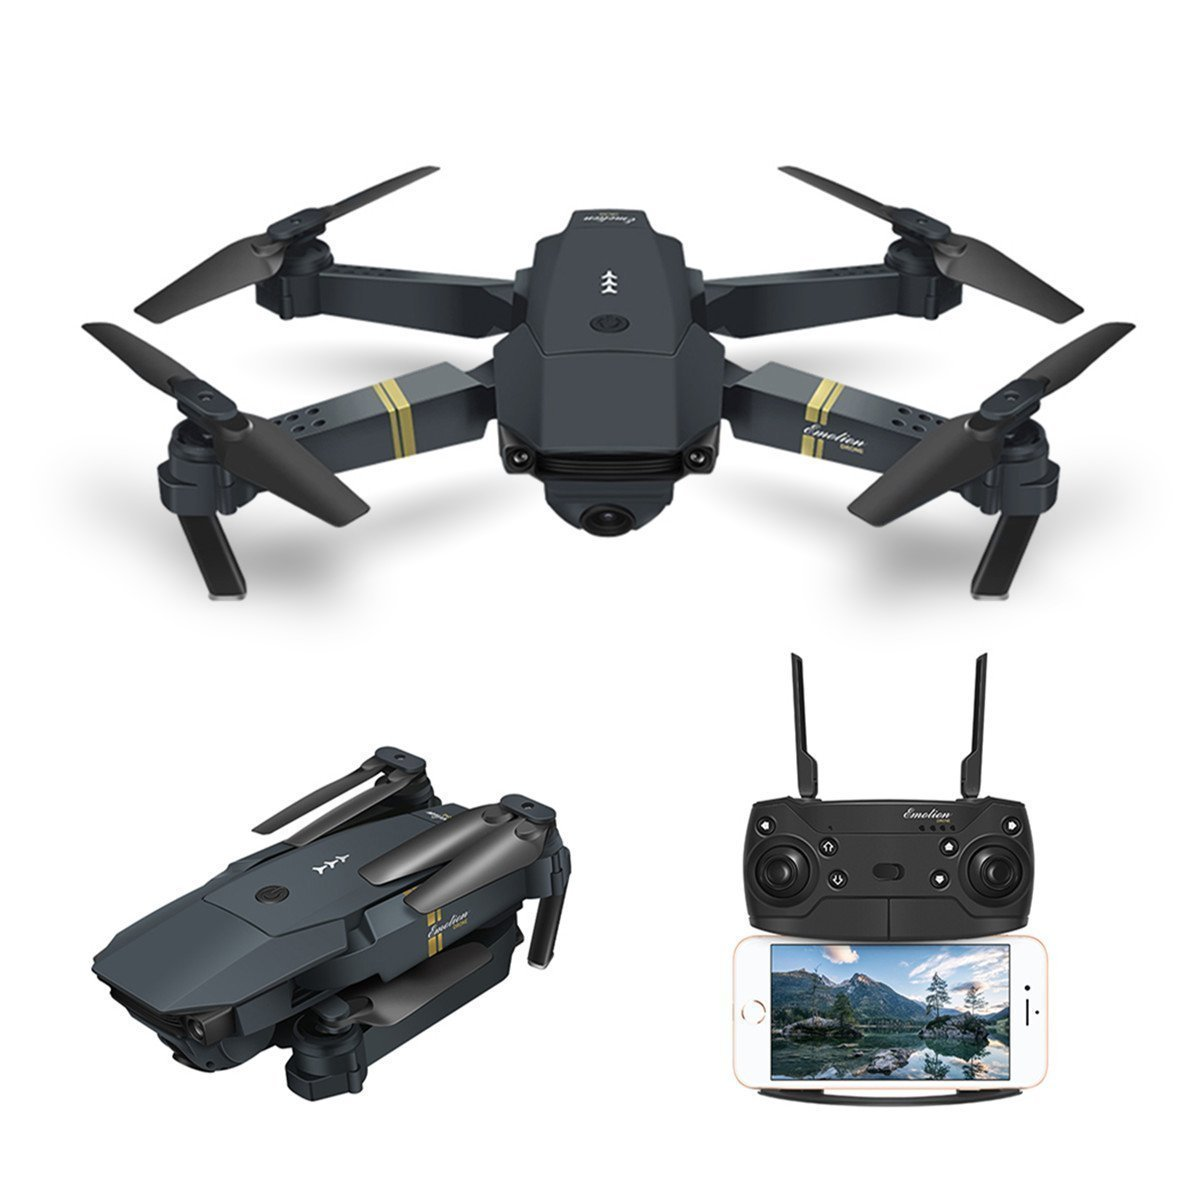 Quadcopter Drone with Camera Live Video, EACHINE E58 WiFi FPV Quadcopter with 120° Wide-Angle 720P HD Camera Foldable Drone RTF - Altitude Hold, One Key Take Off/Landing, 3D Flip, APP Control by EACHINE